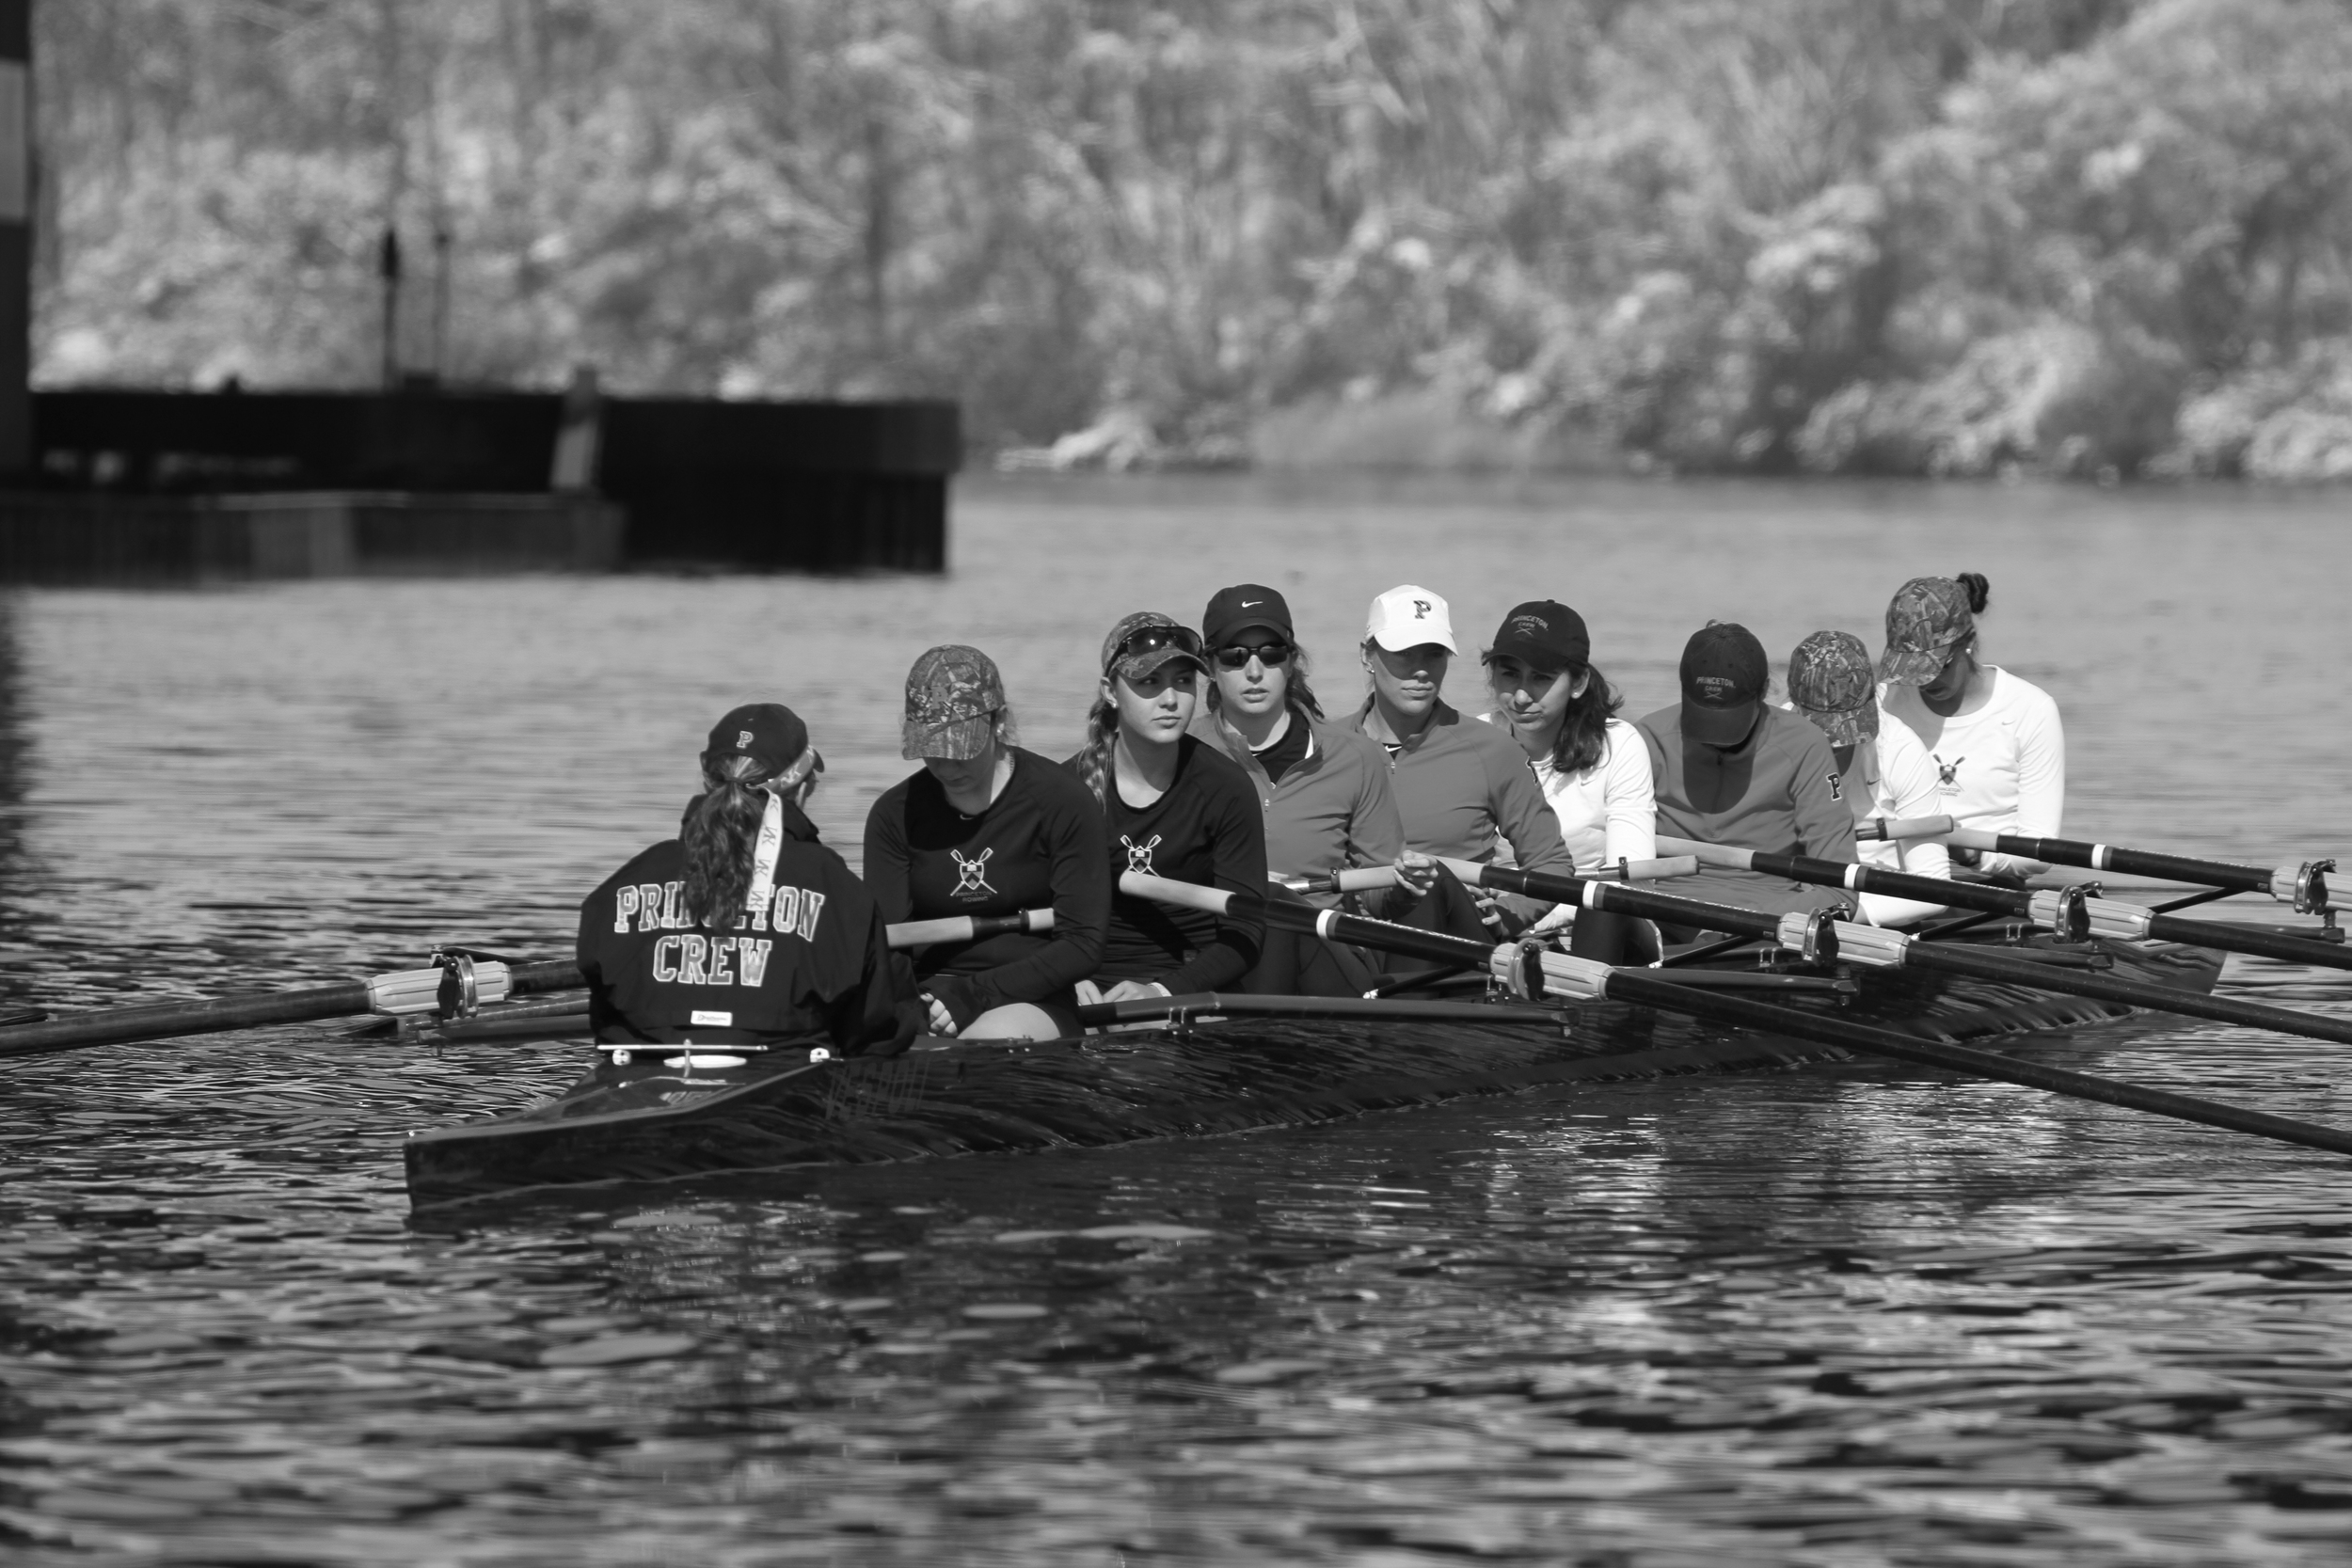 The 1v chilling- literally - between pieces